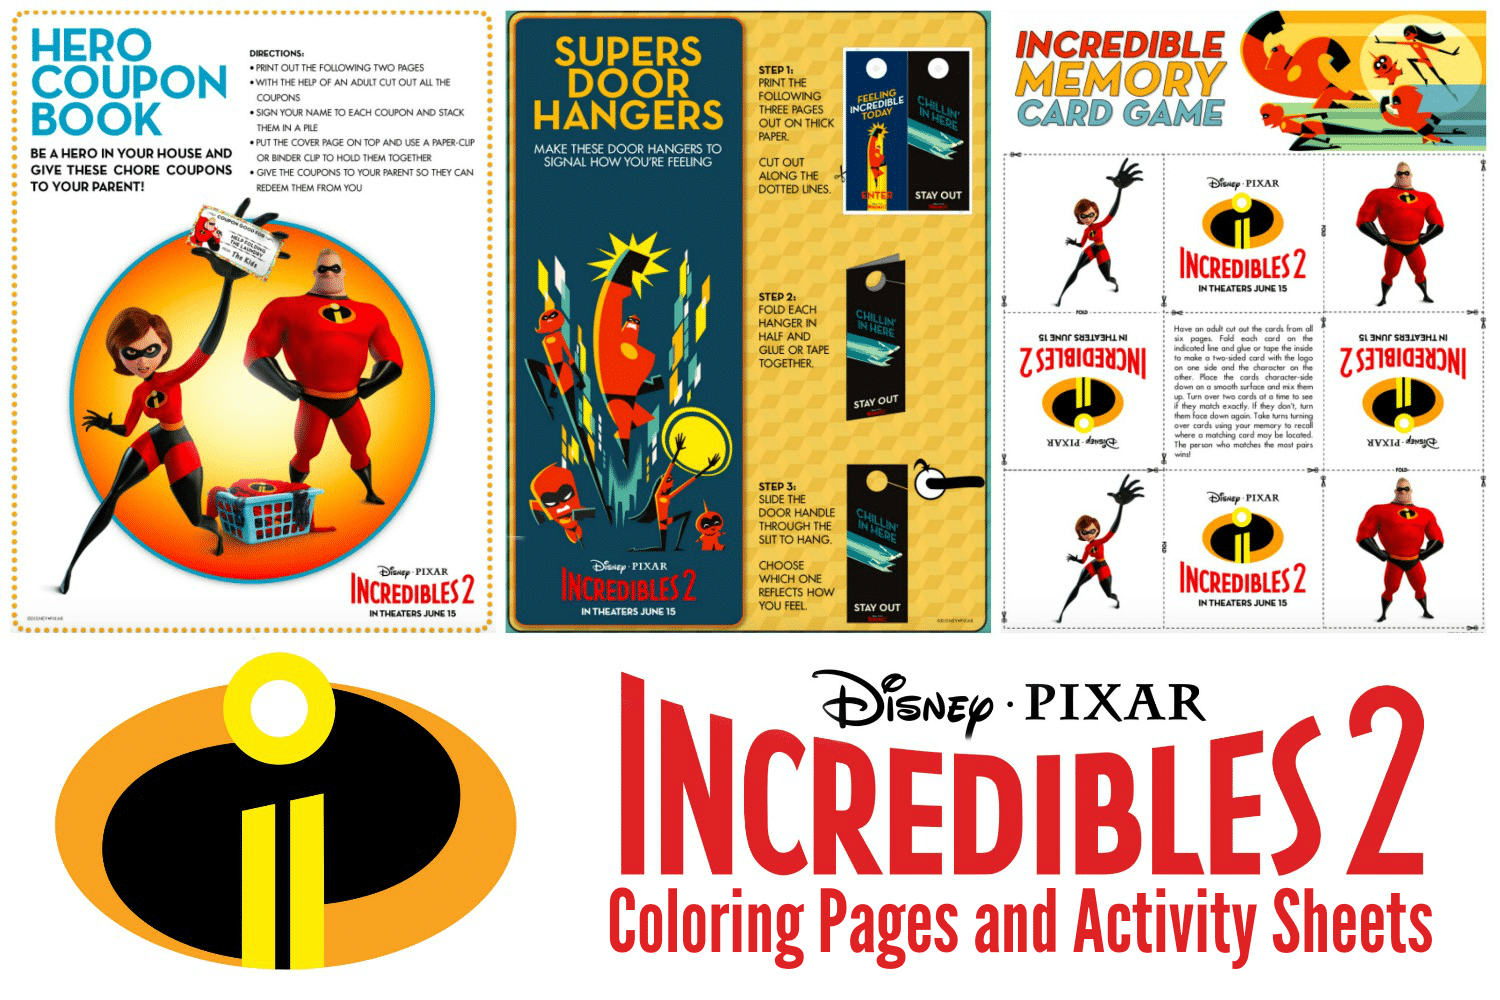 Incredibles 2 Coloring Sheets And Activity Pages As The